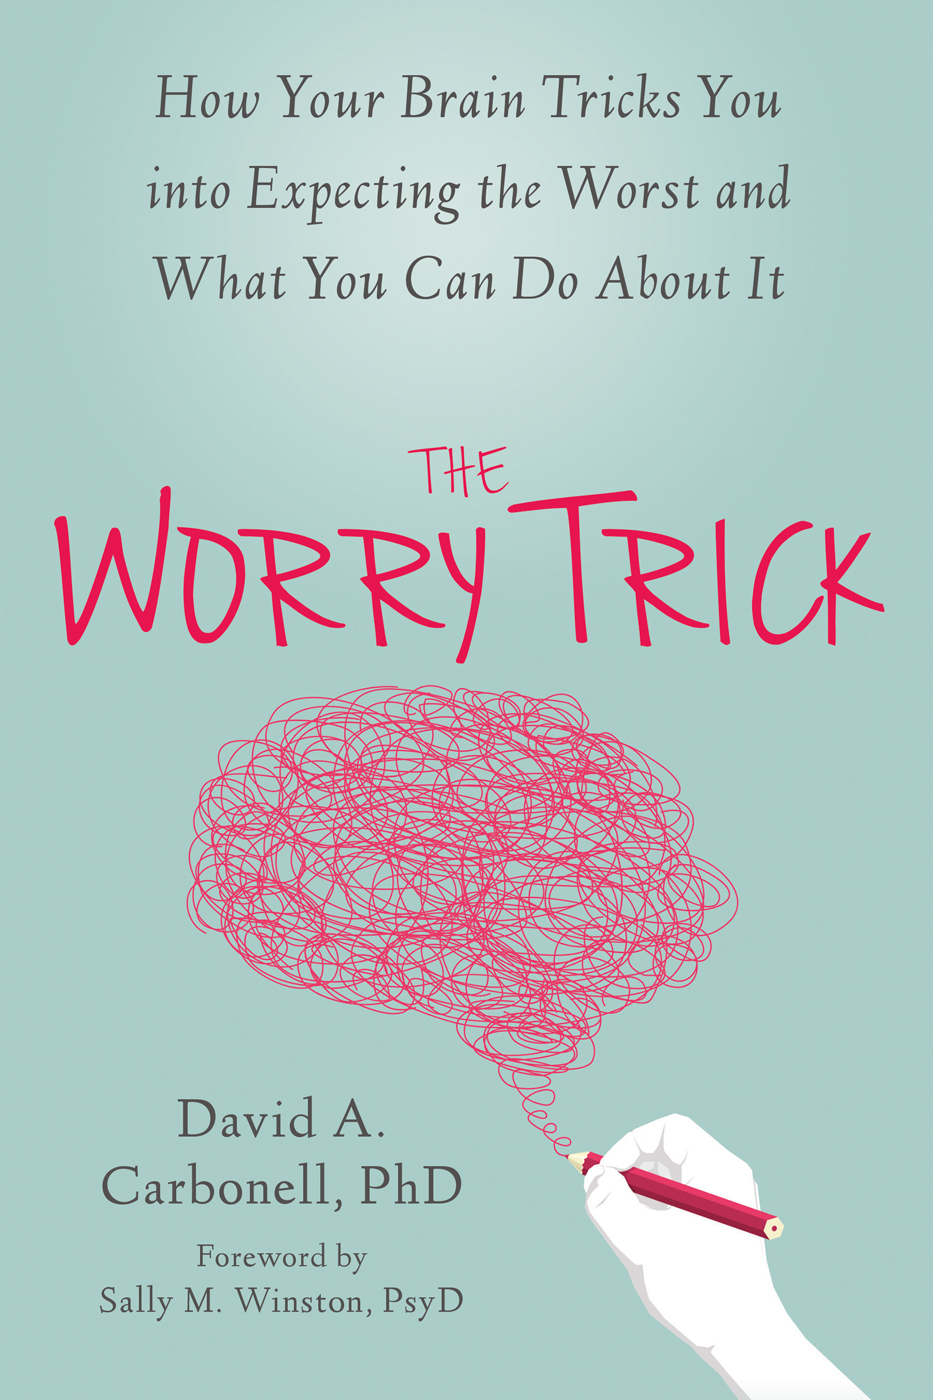 The Worry Trick - How Your Brain Tricks You into Expecting the Worst - David A Carbonell